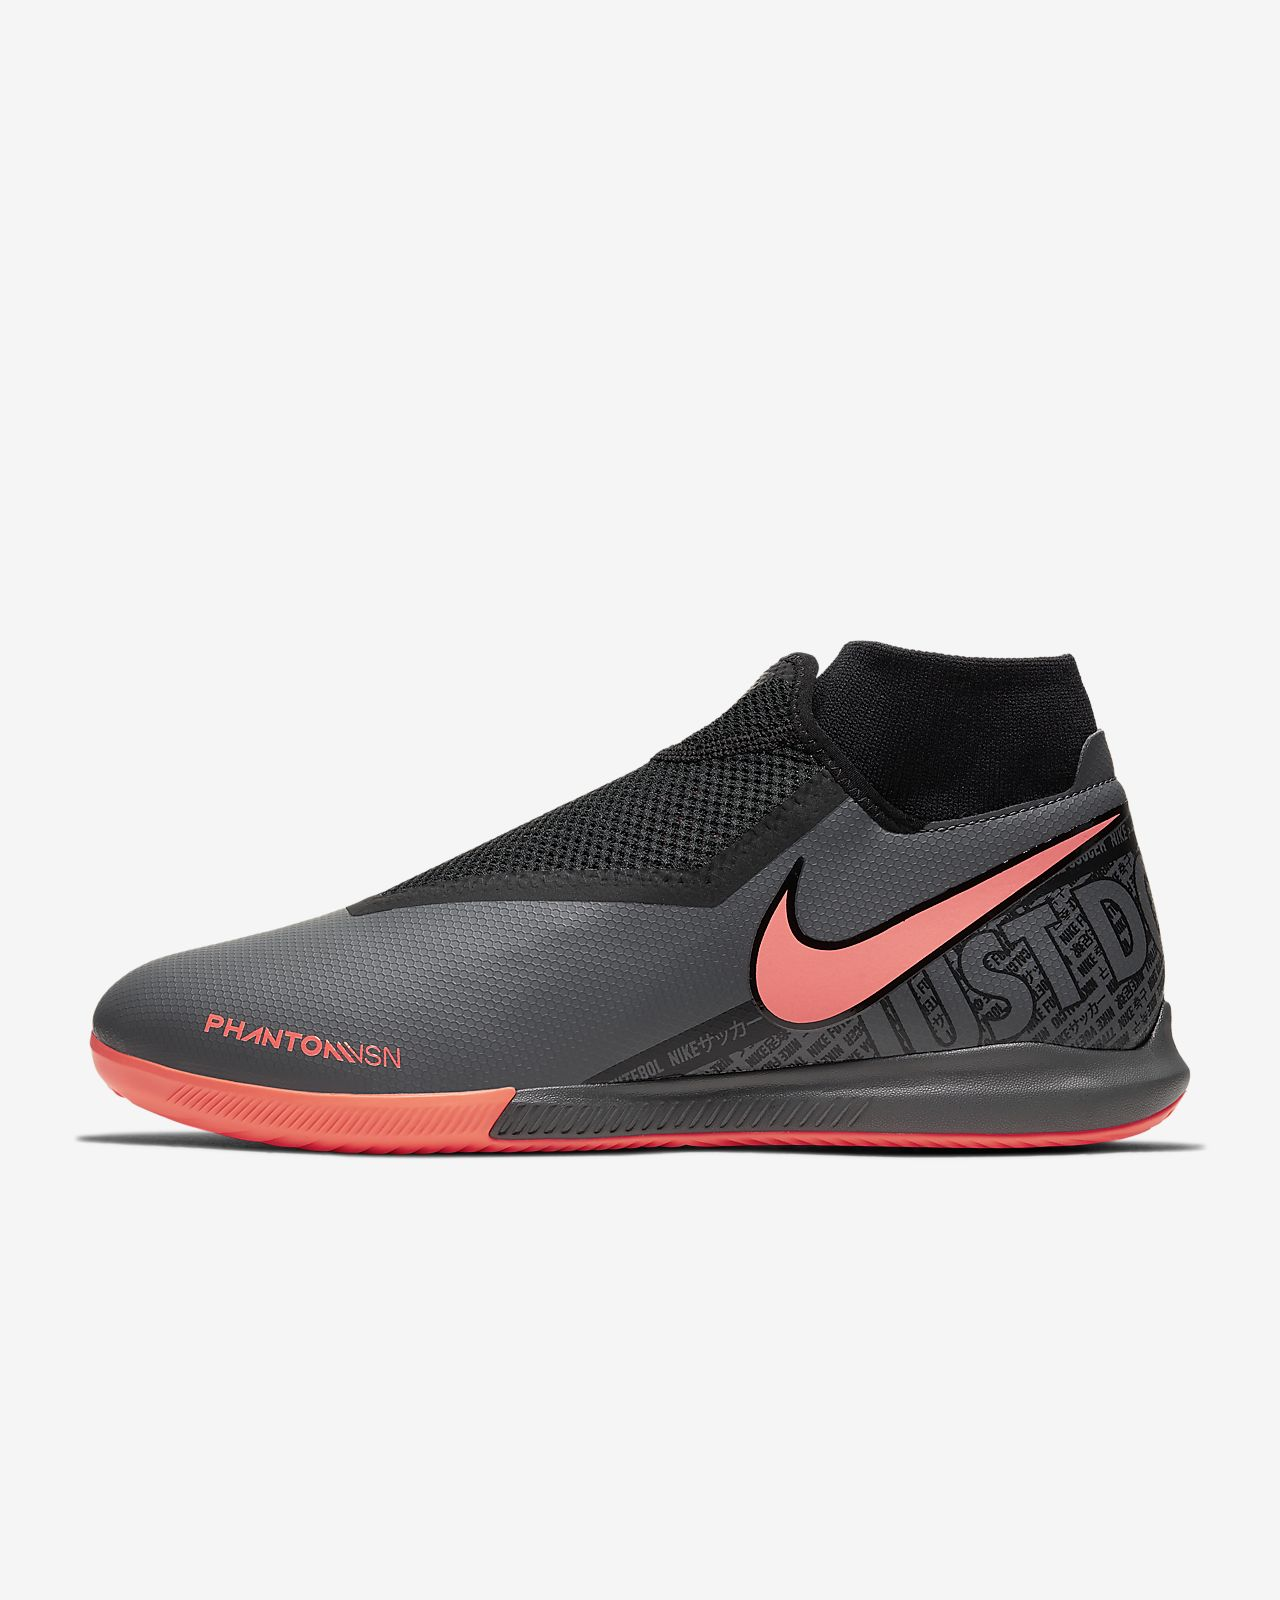 Nike Phantom Vision Academy Dynamic Fit IC Indoor/Court Football Shoe